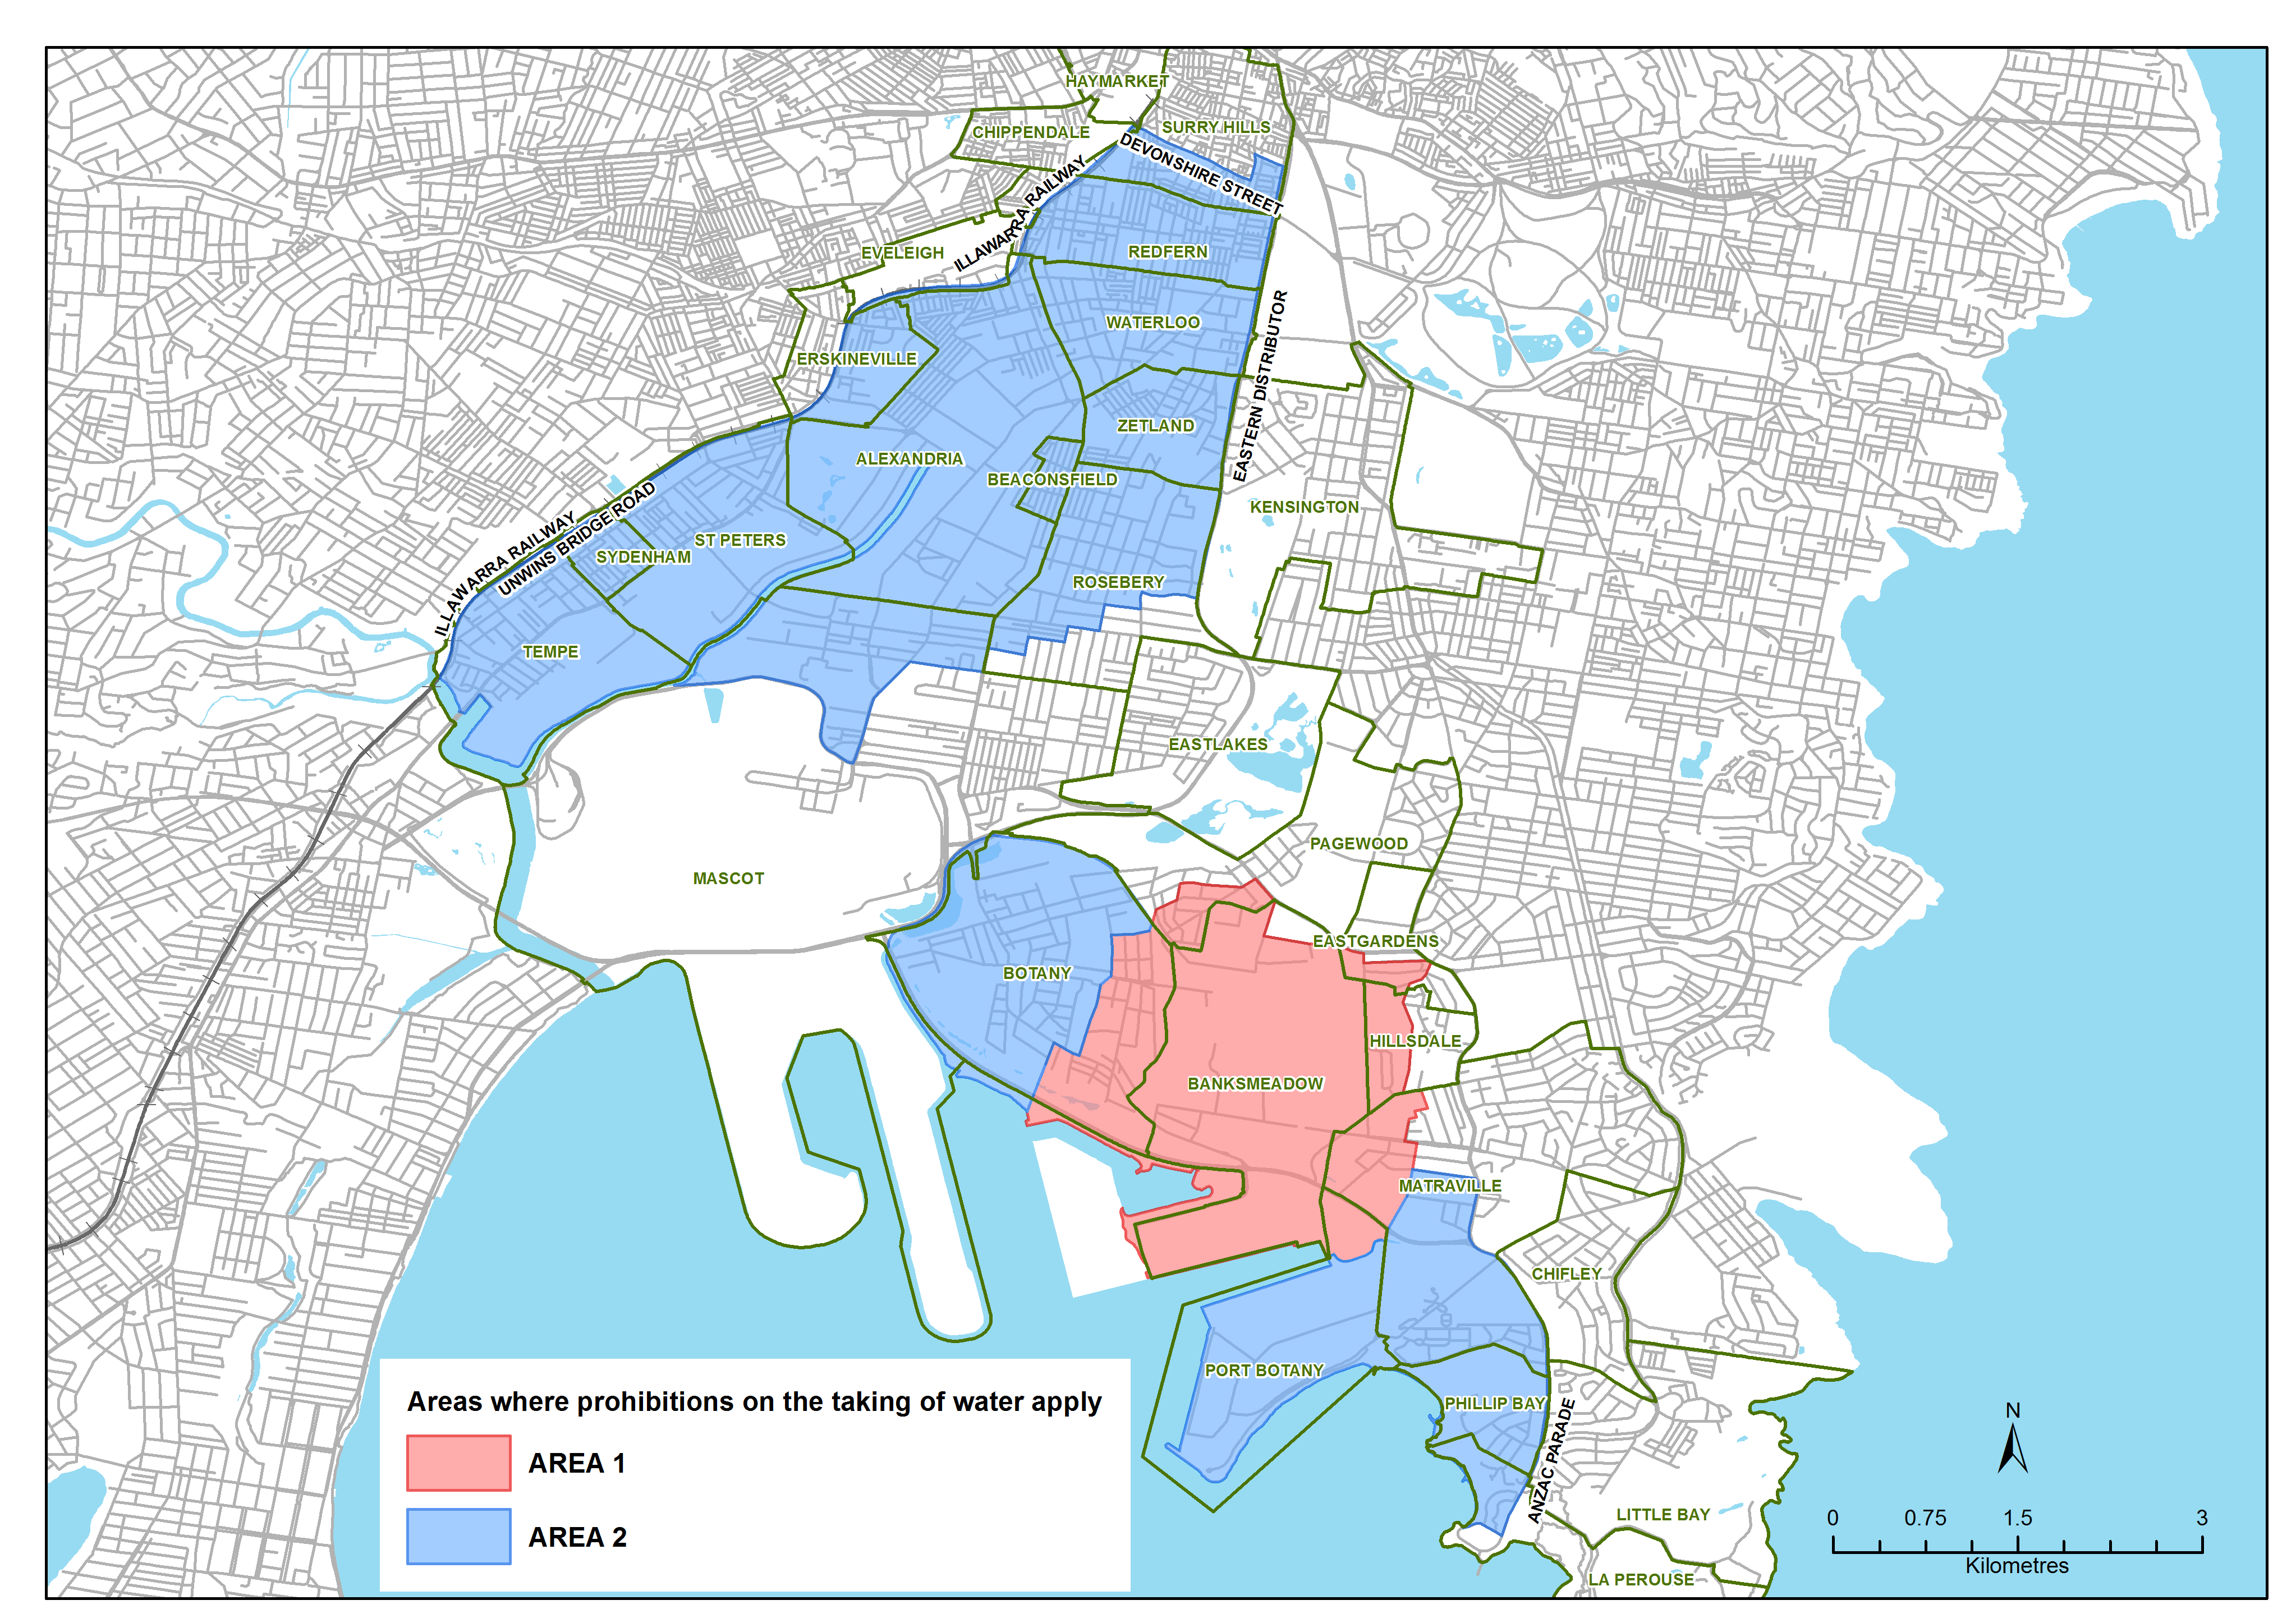 Map of Sydney with restricted water areas